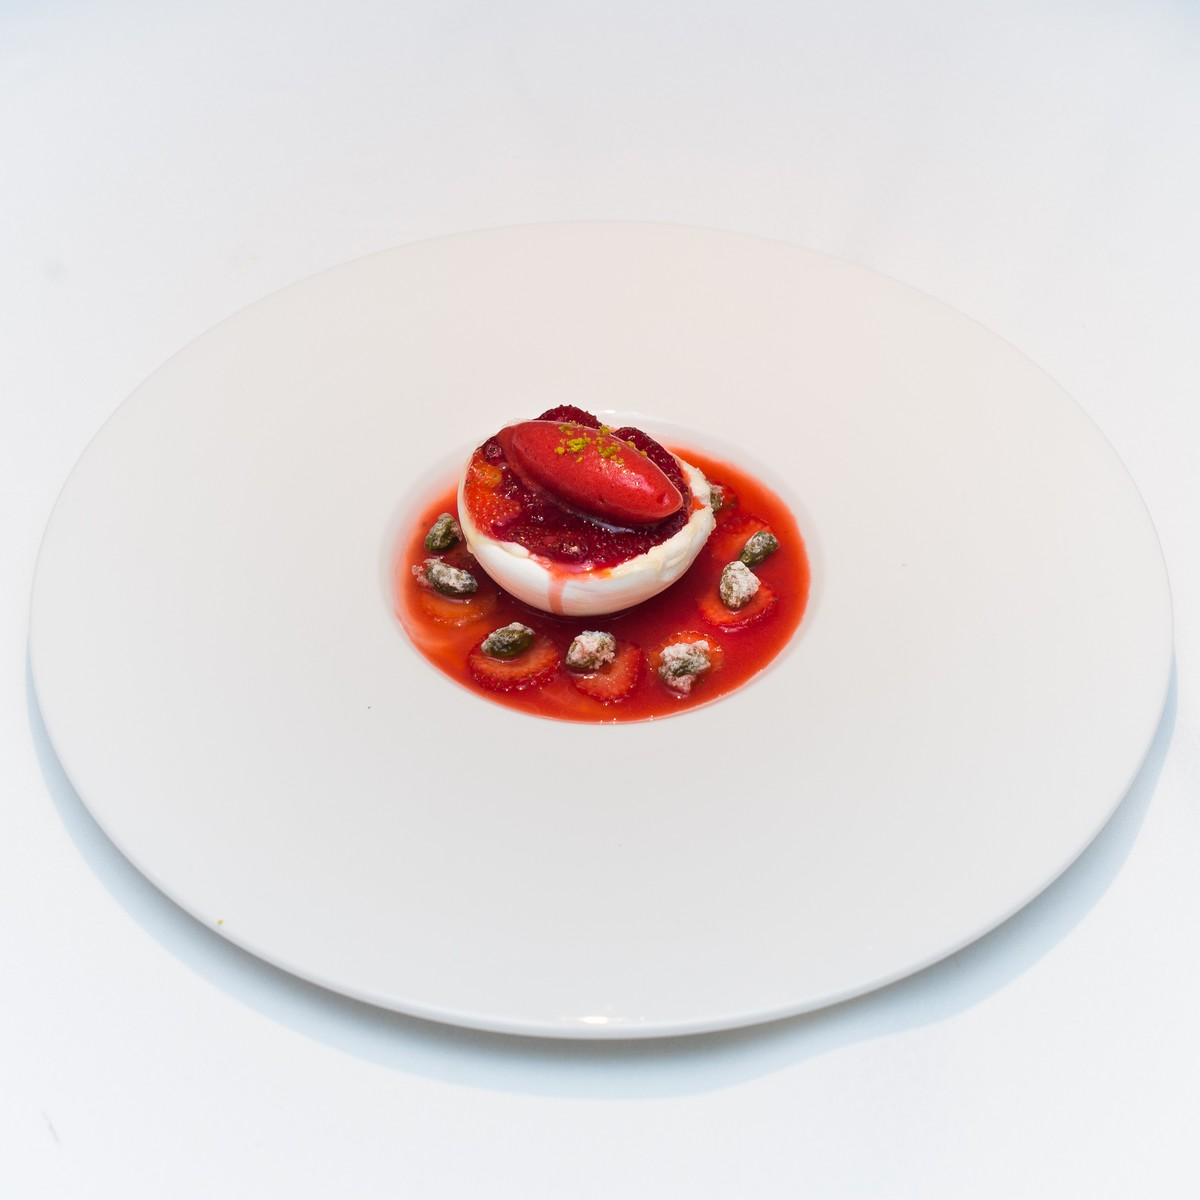 lecerf-35e_-meringue-creme-double-coulis-de-fraise_pierrevogel-56